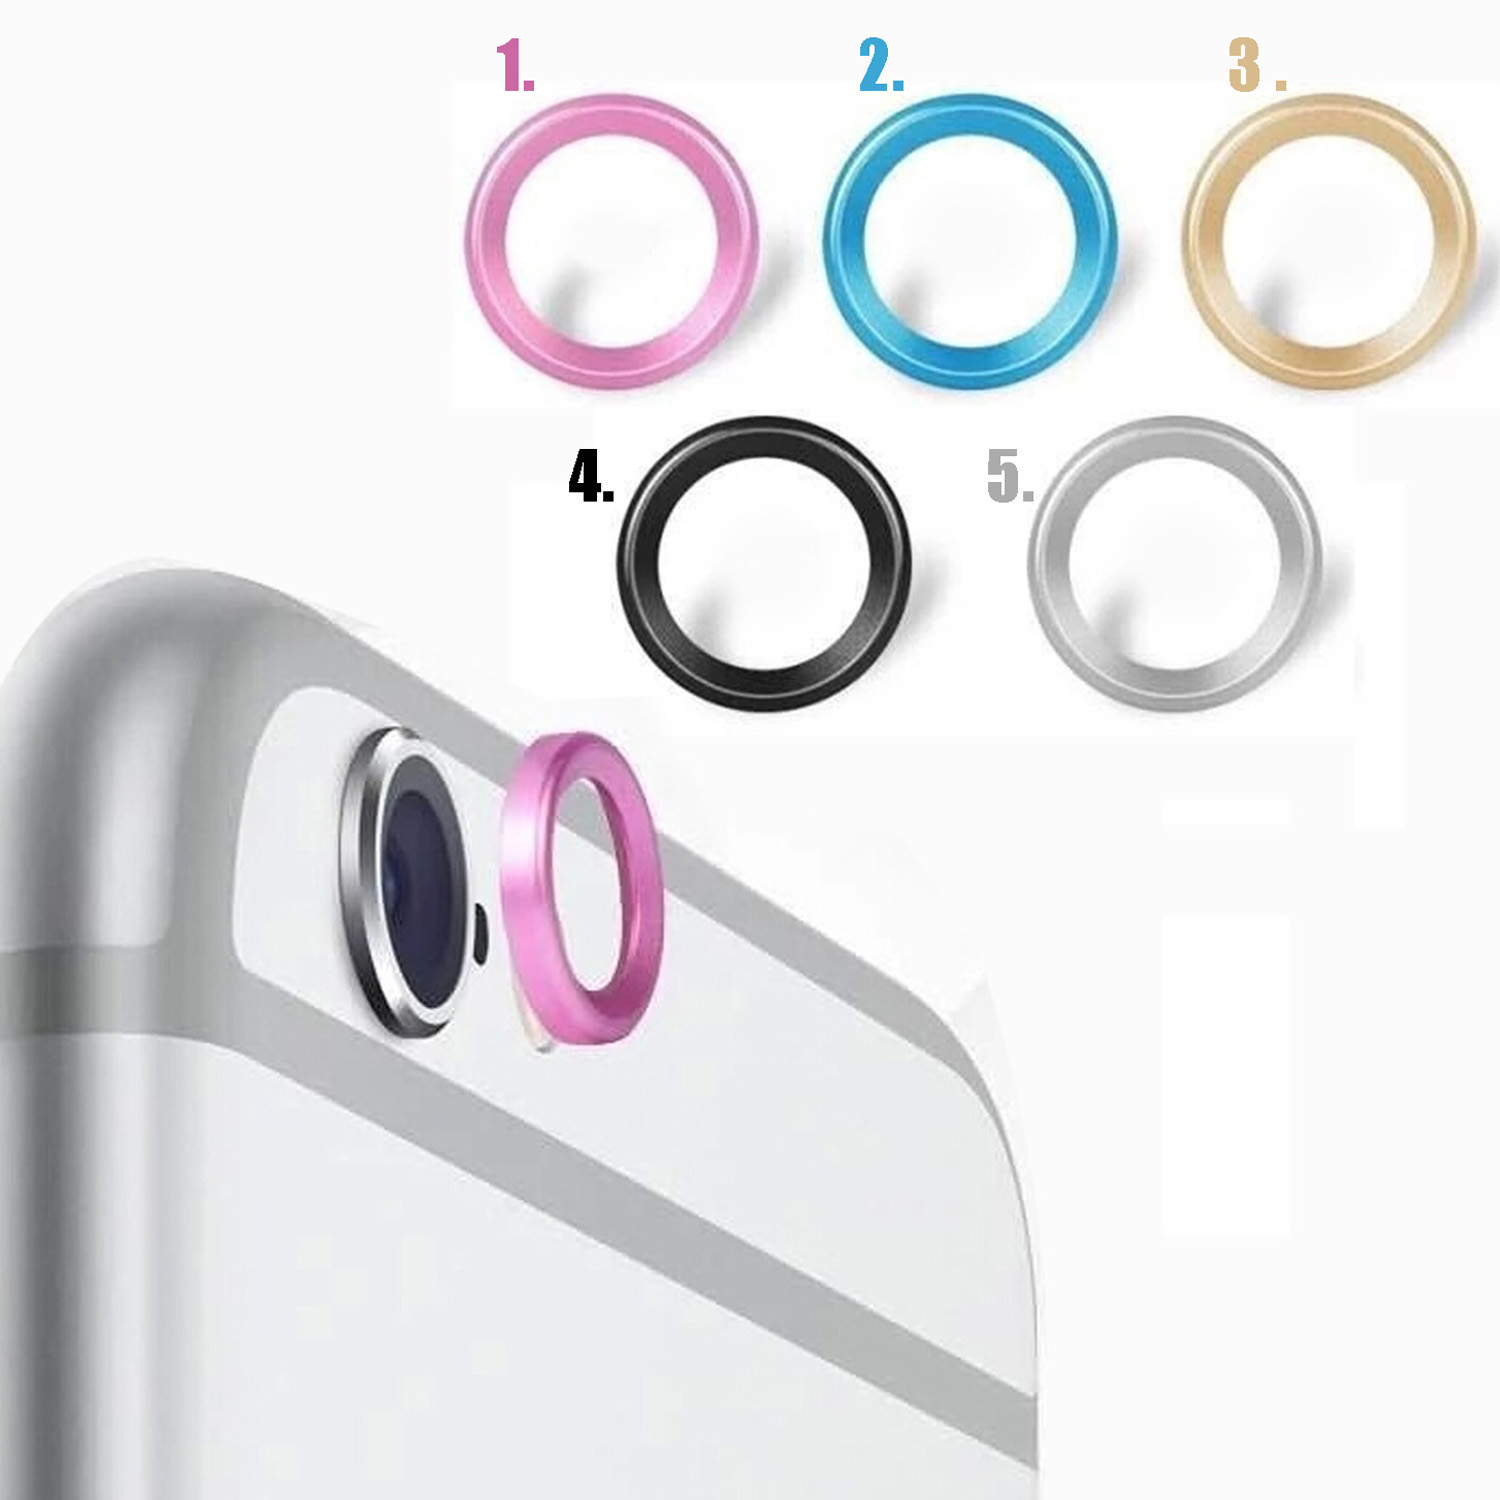 Besegad Metal Rear Camera Ring Guard Circle Cover Lens Protector <font><b>Bumper</b></font> <font><b>Case</b></font> for Apple iPhone X 10 7 7plus 6 6Plus Gadgets image